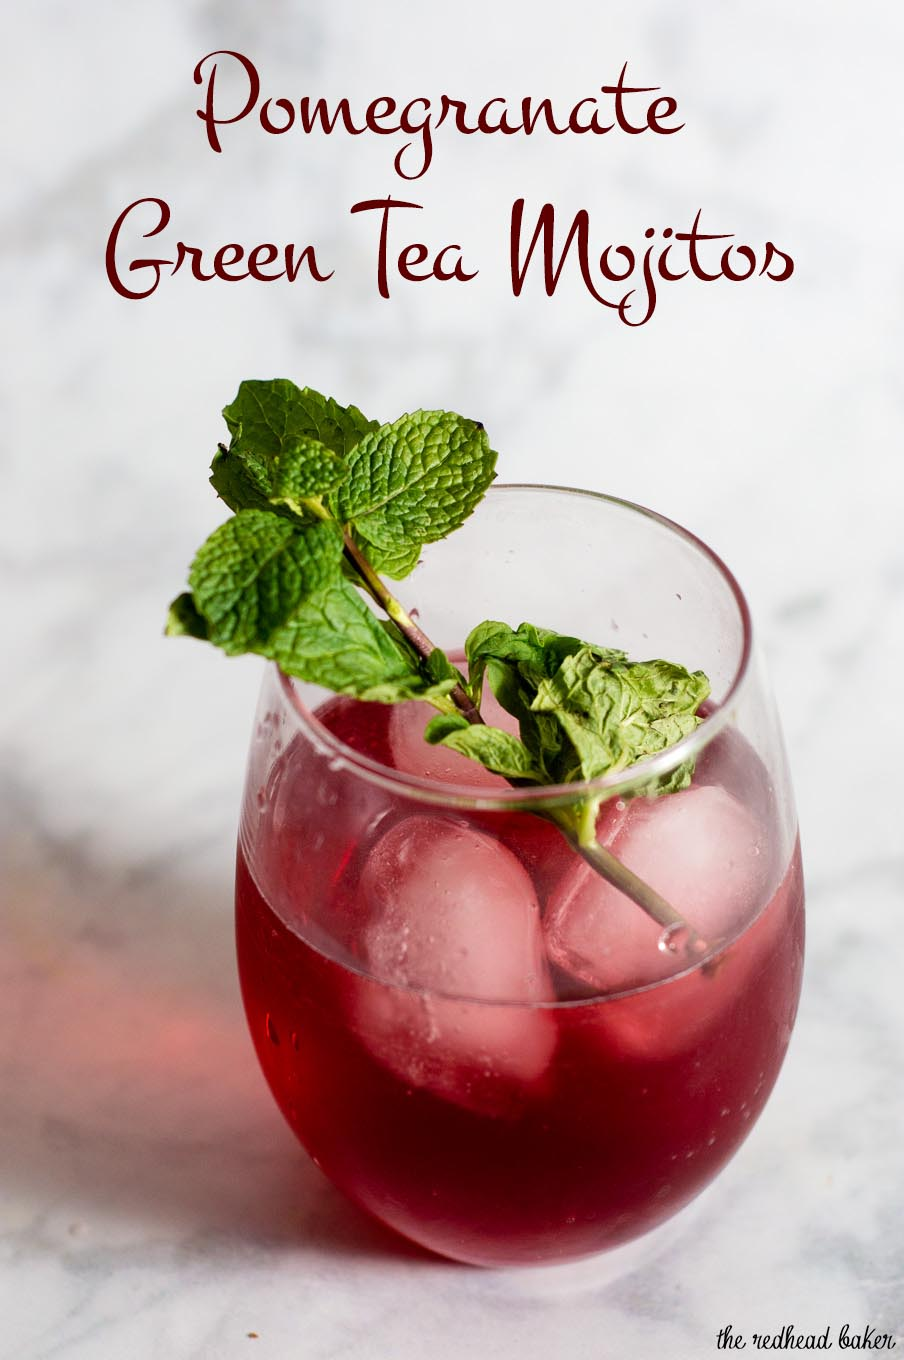 Pomegranate green tea mojitos are a Moroccan twist on a Cuban cocktail. The classic mint-and-lime drink gets an extra flavor twist from pomegranate and green tea.